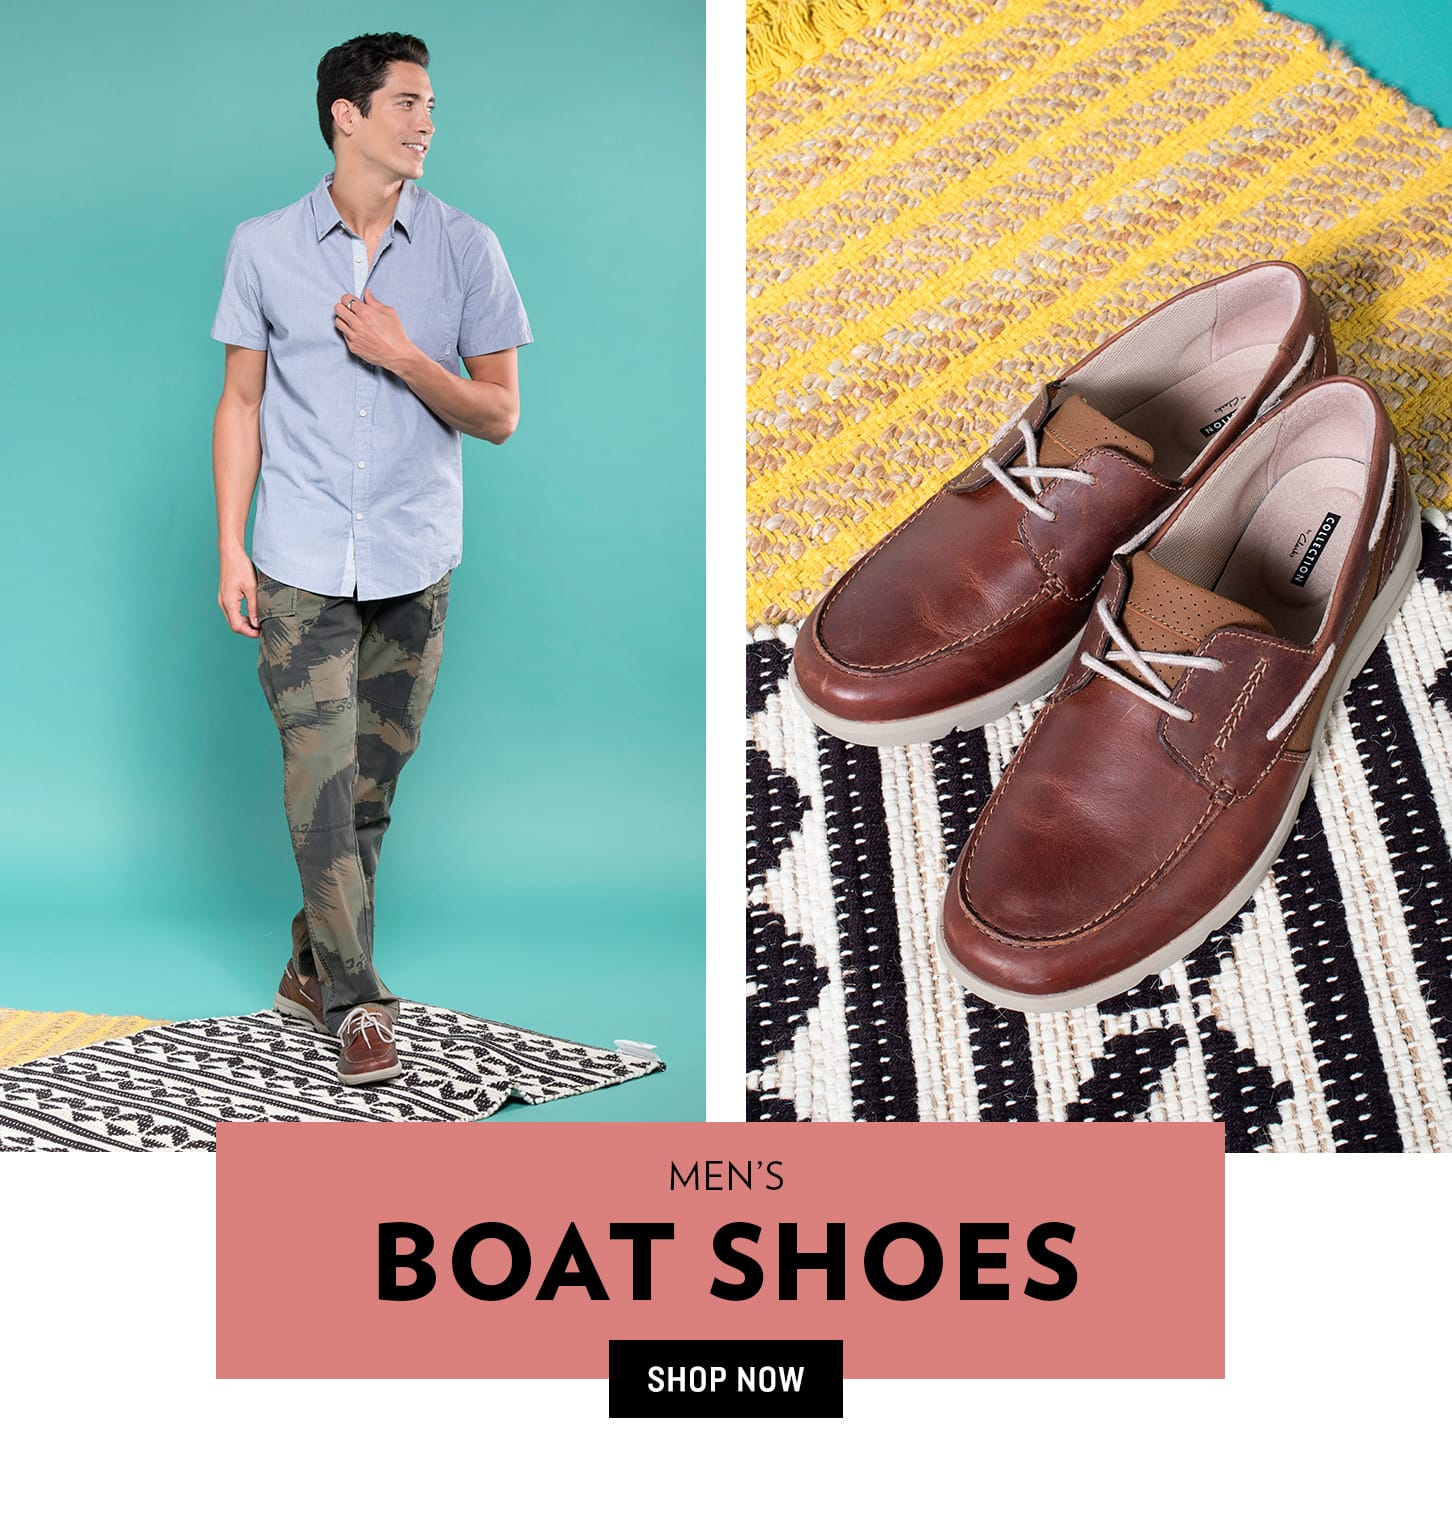 Shop Men's Boat Shoes